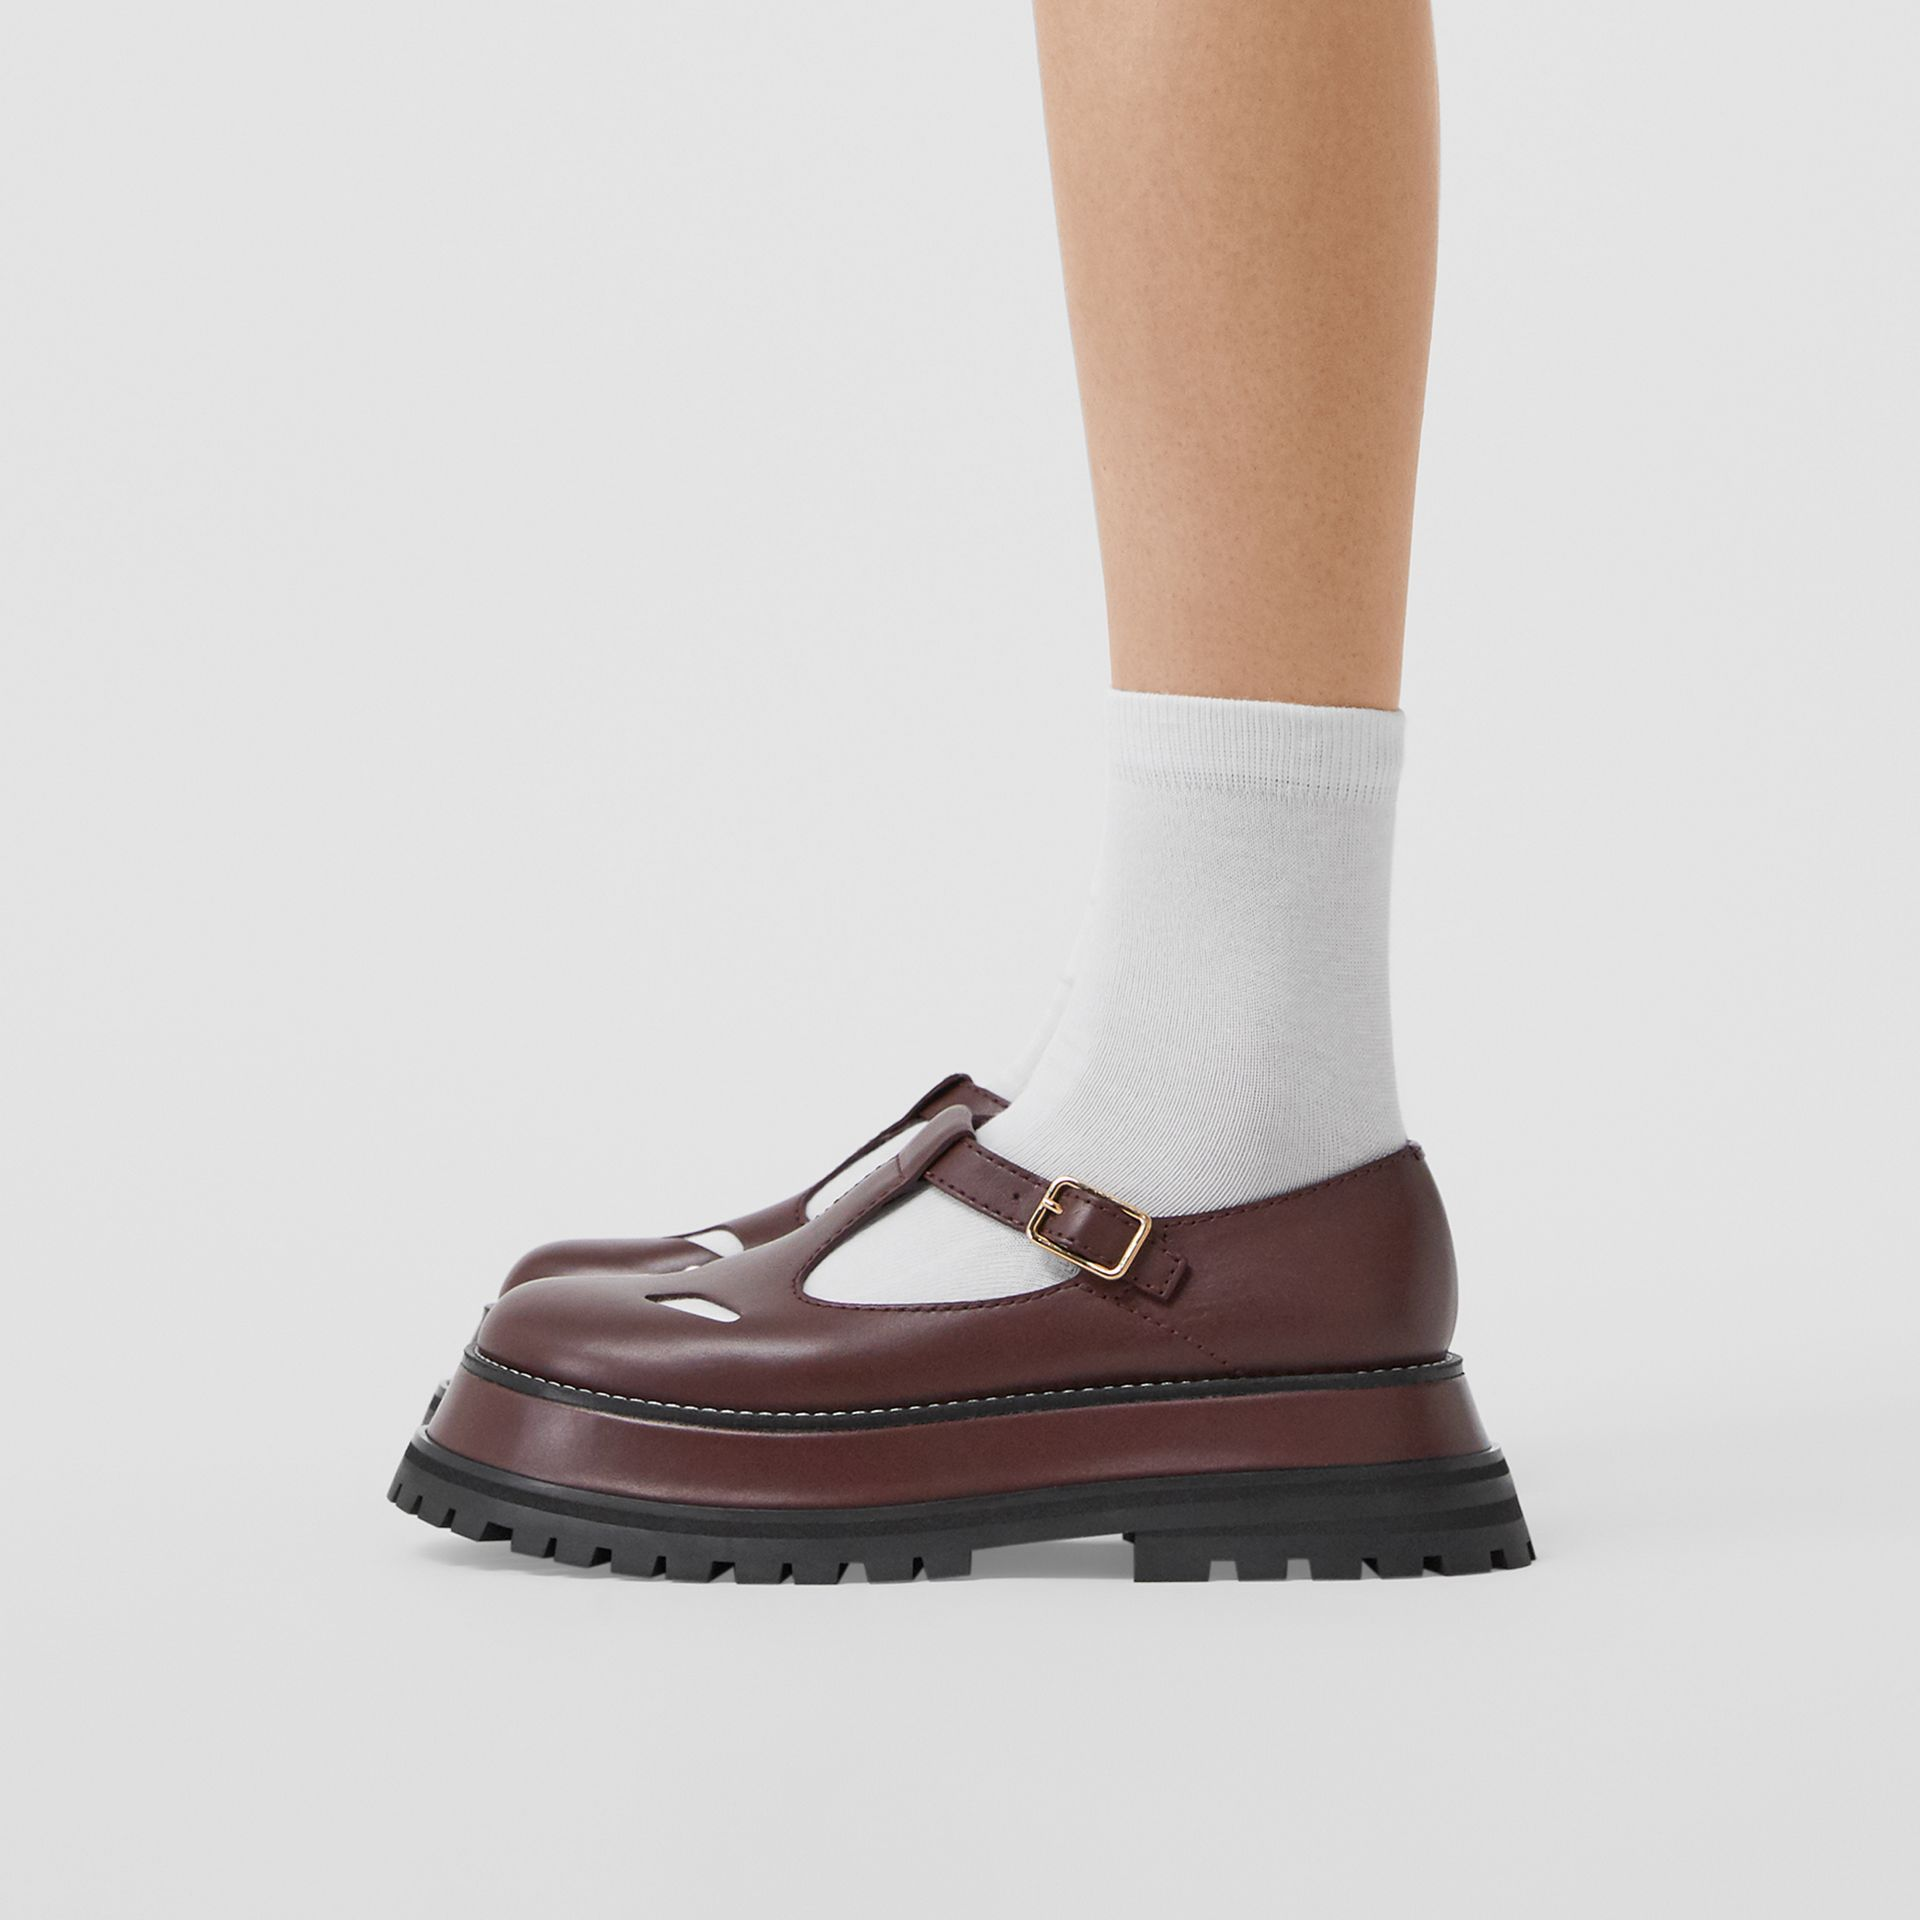 Leather T-bar Shoes in Bordeaux - Women | Burberry United Kingdom - gallery image 2